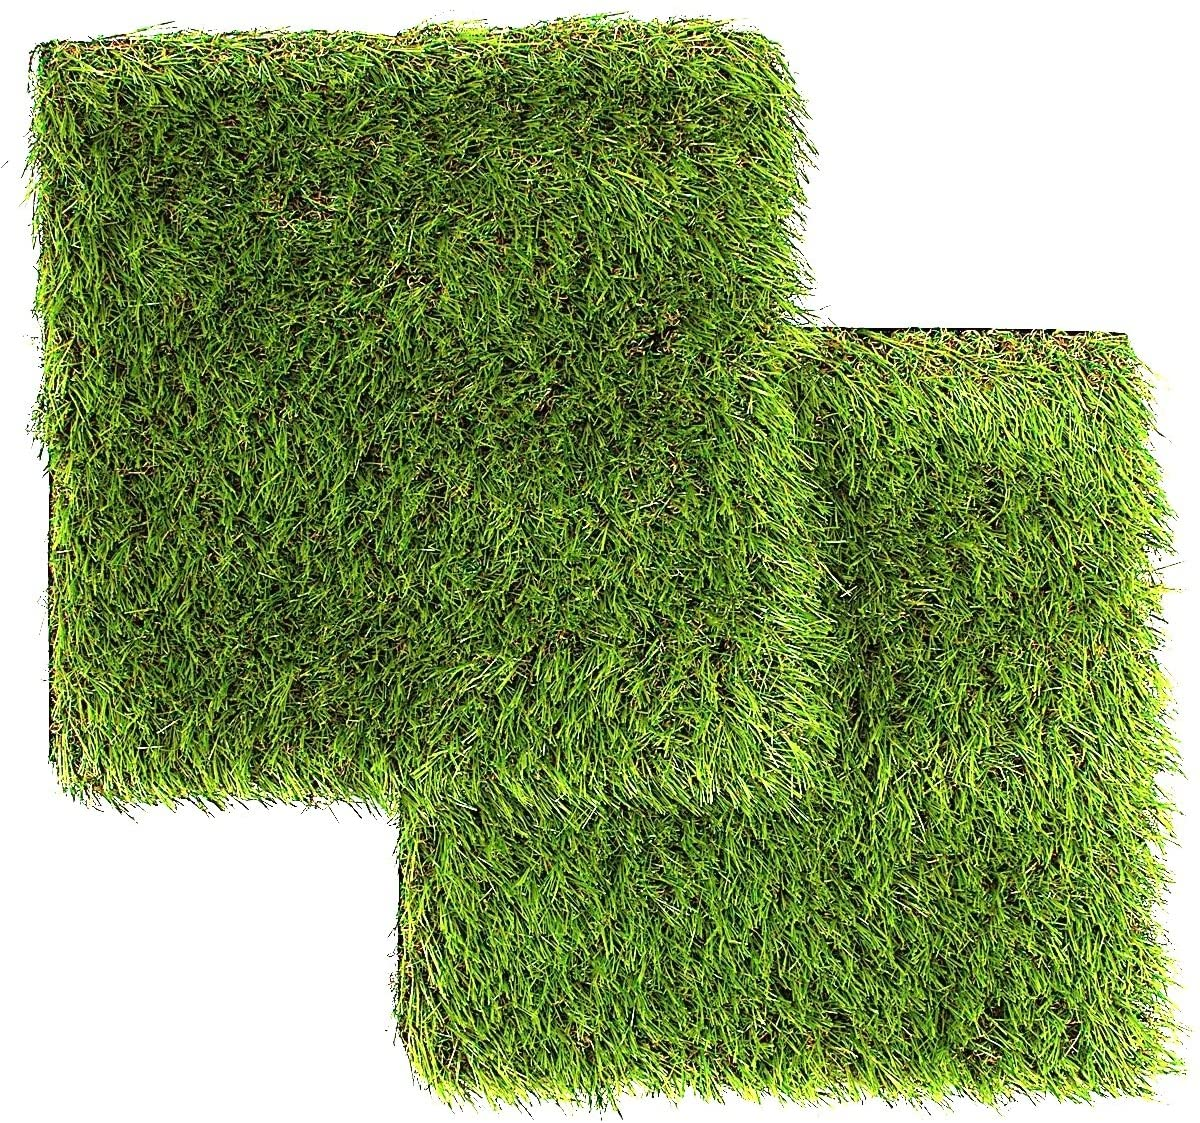 LULIND - Artificial Grass Square Tiles